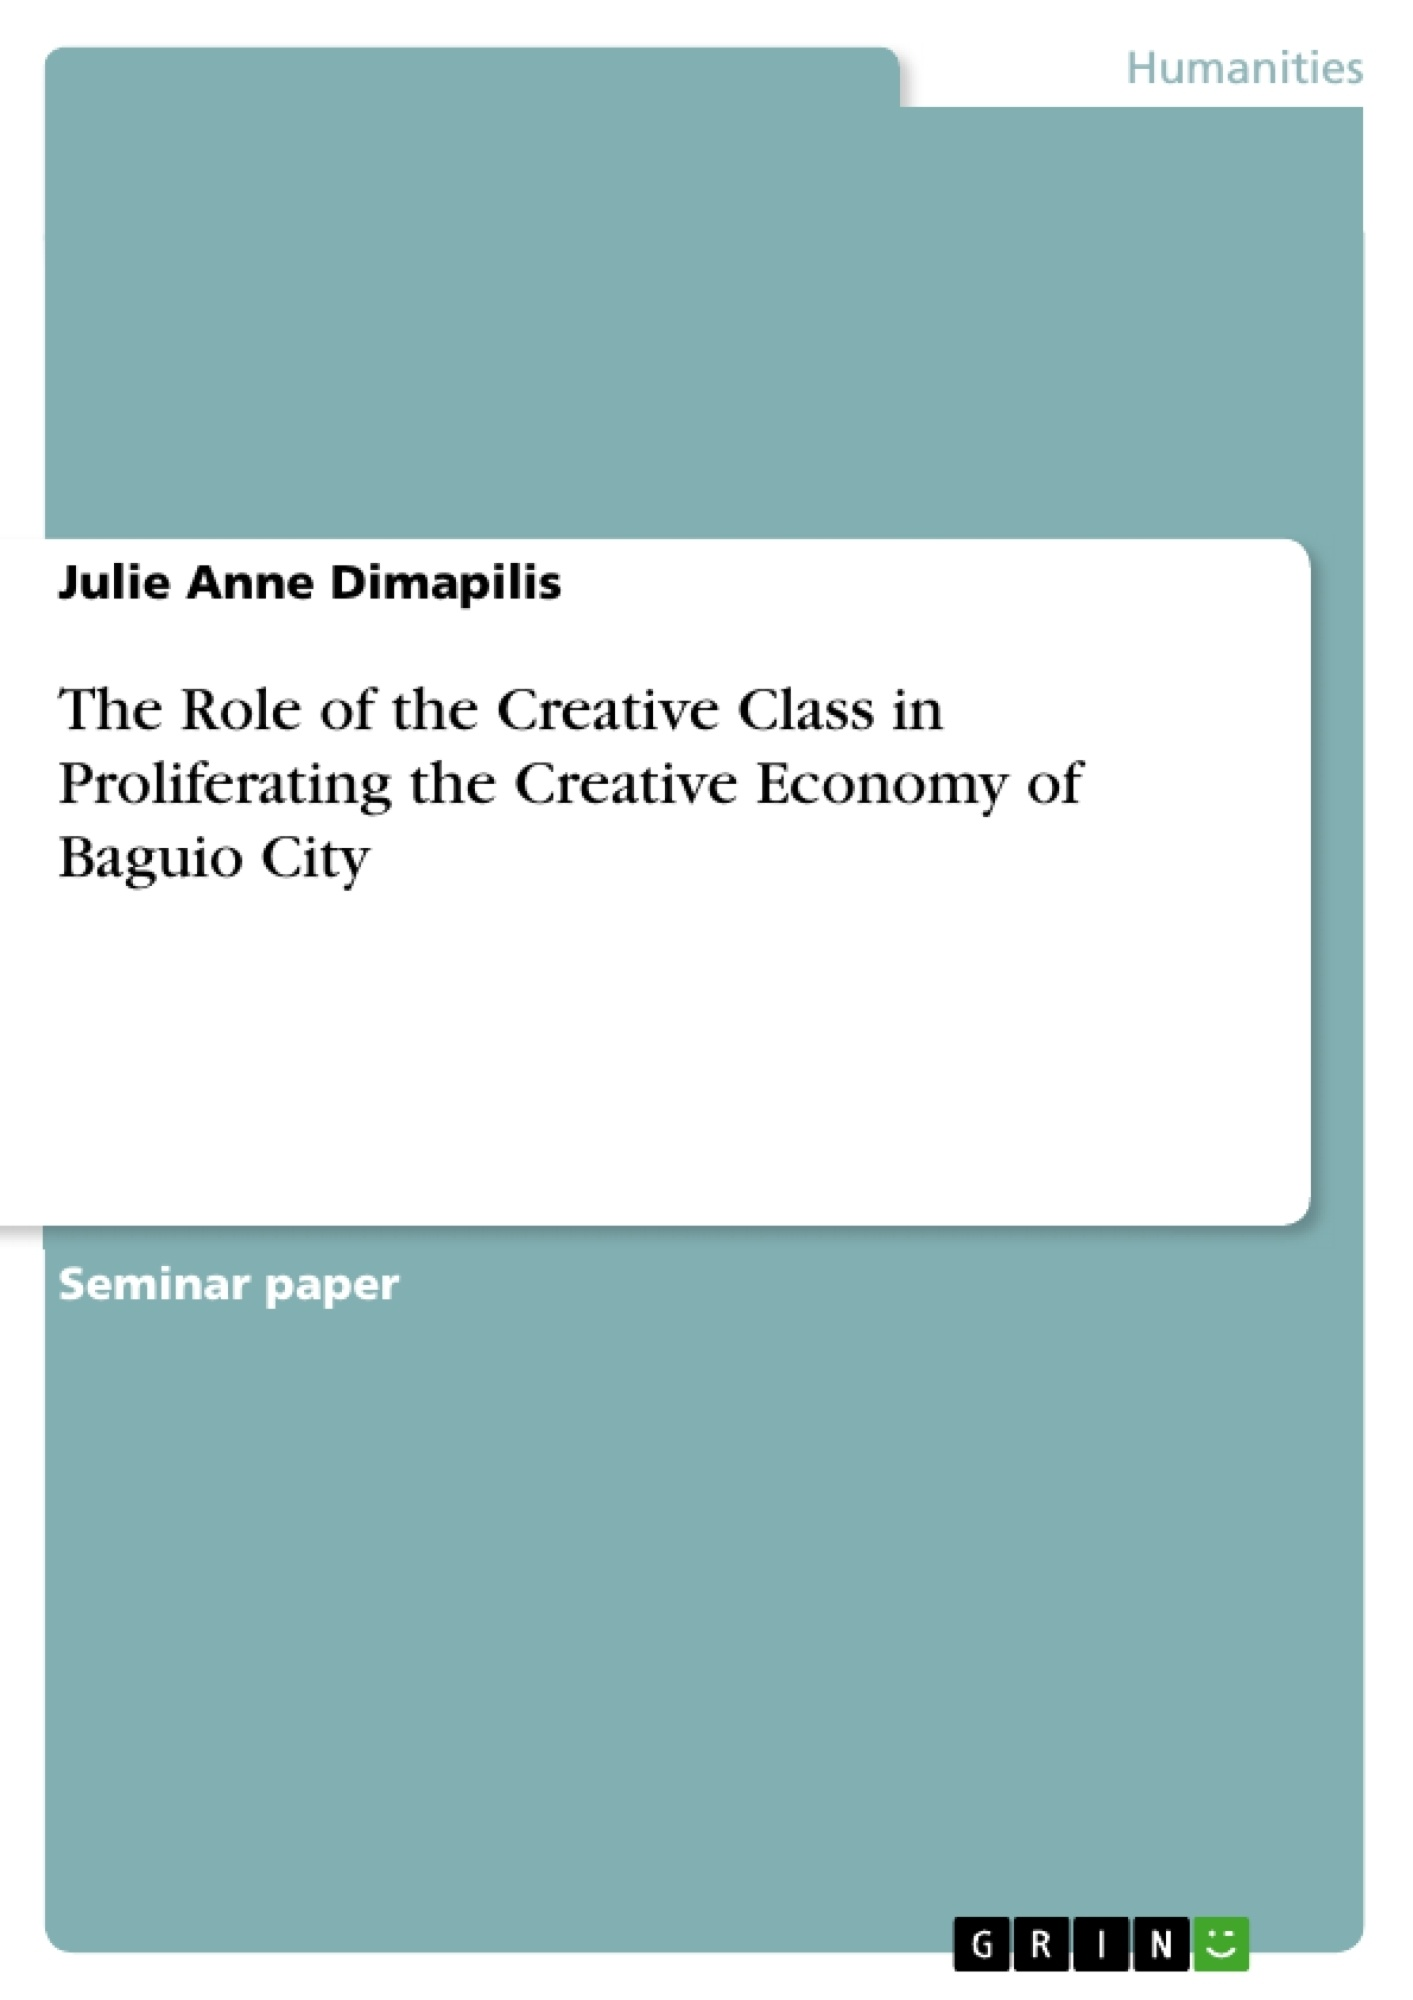 Title: The Role of the Creative Class in Proliferating the Creative Economy of Baguio City